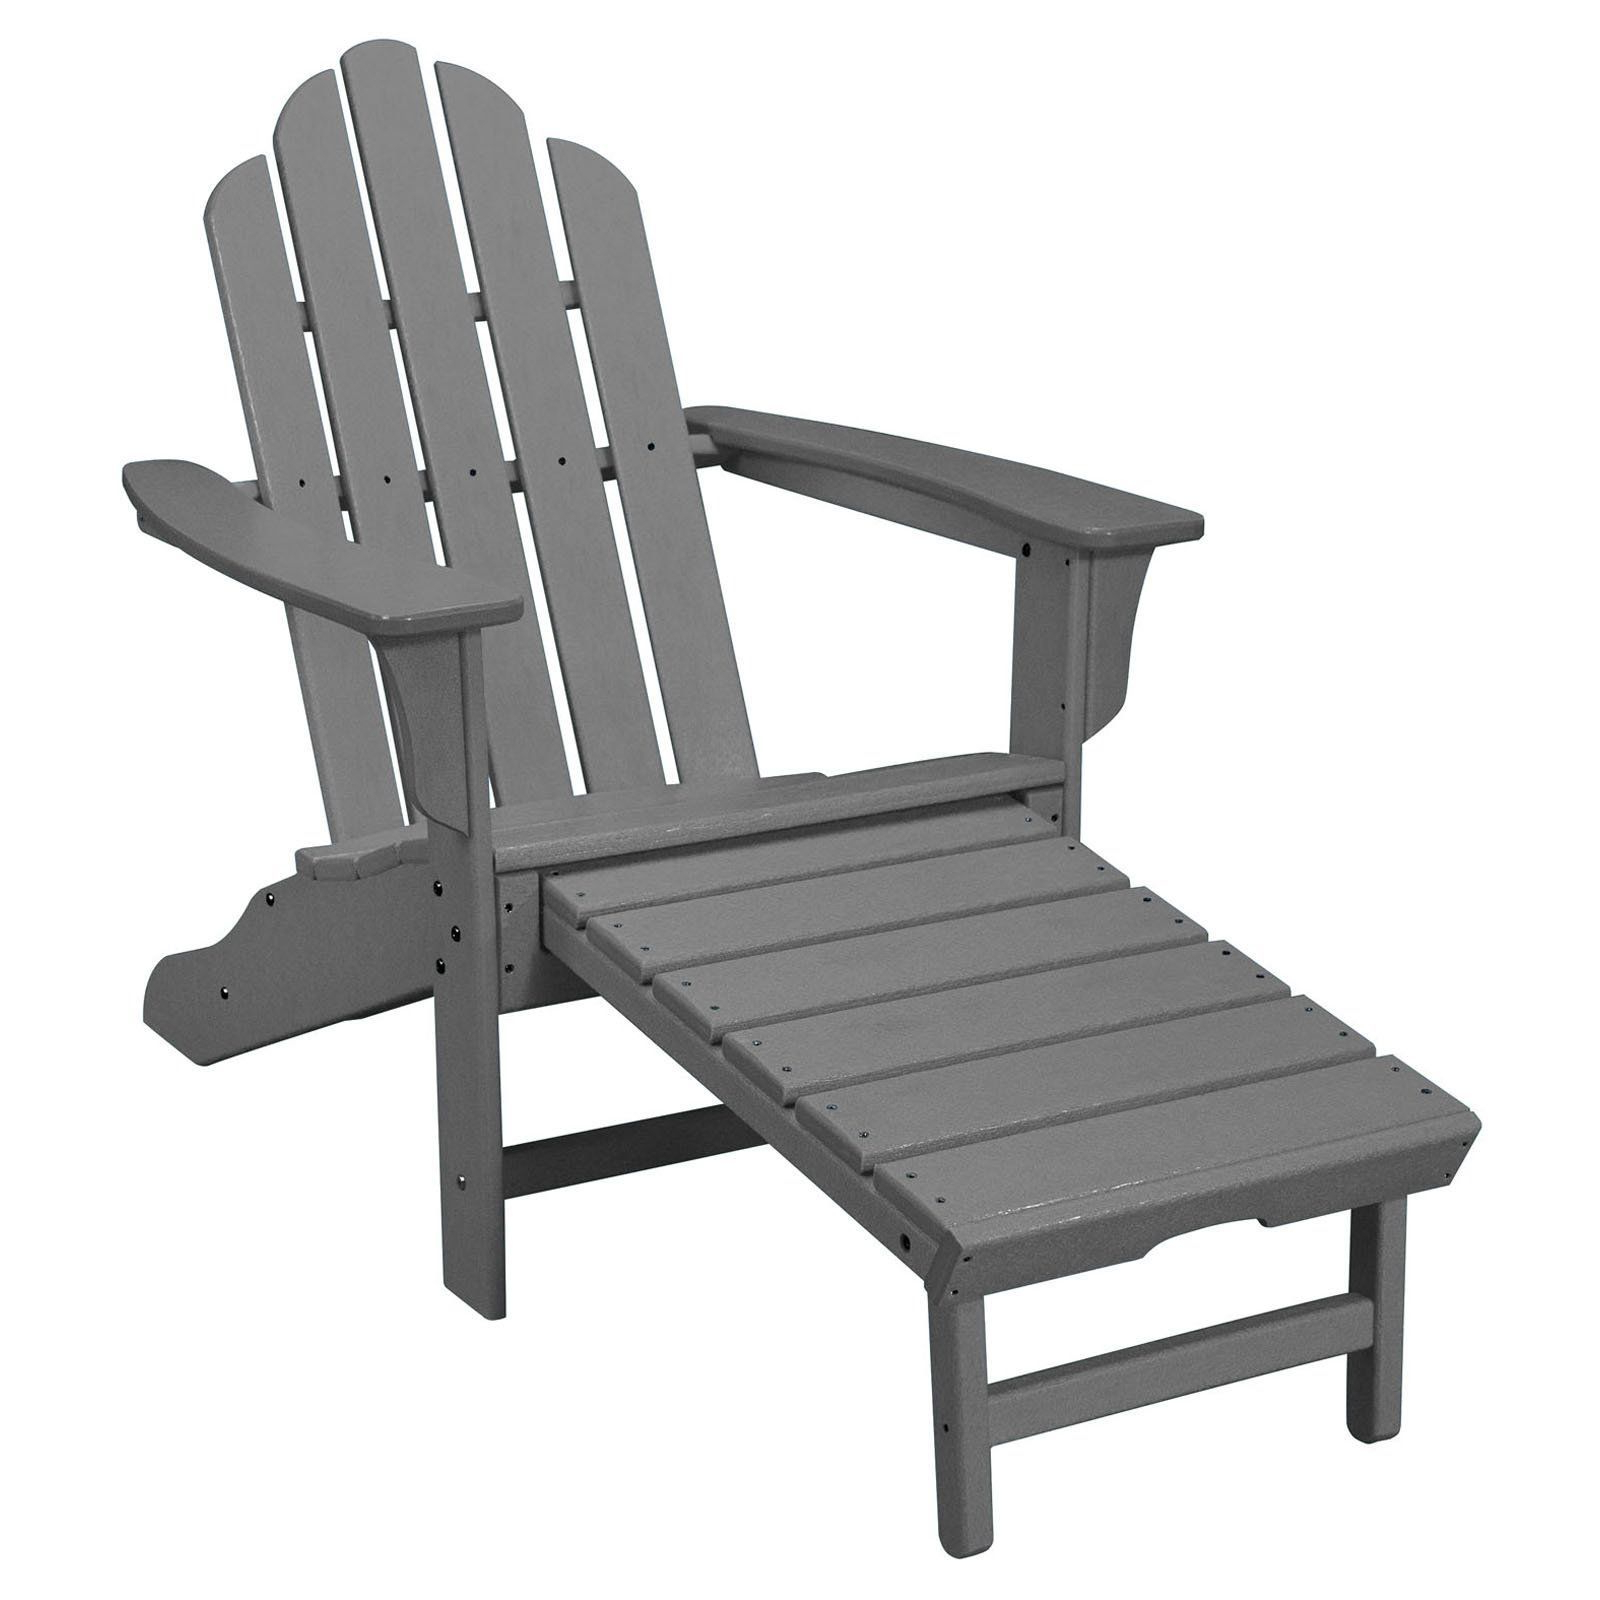 Outdoor Hanover All Weather Contoured Adirondack Chair With In Most Up To Date Mahogany Adirondack Chairs With Ottoman (View 3 of 25)